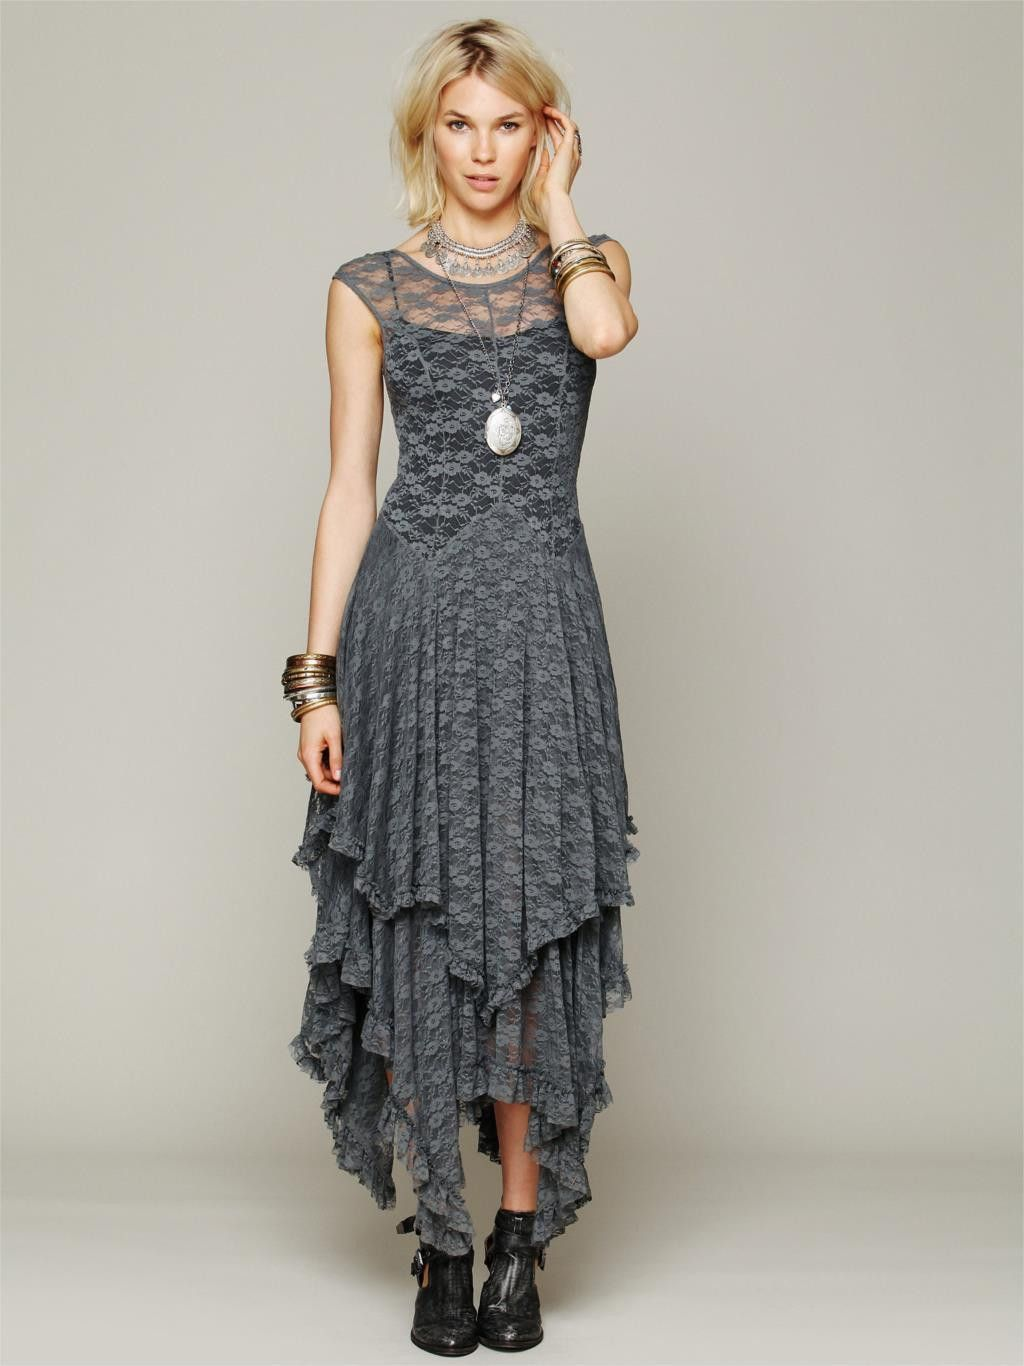 0d746a83d1a7 Welcome to Boho Inspired Online Boutique. Here we offer the latest and  hotted Bohemian Fashion